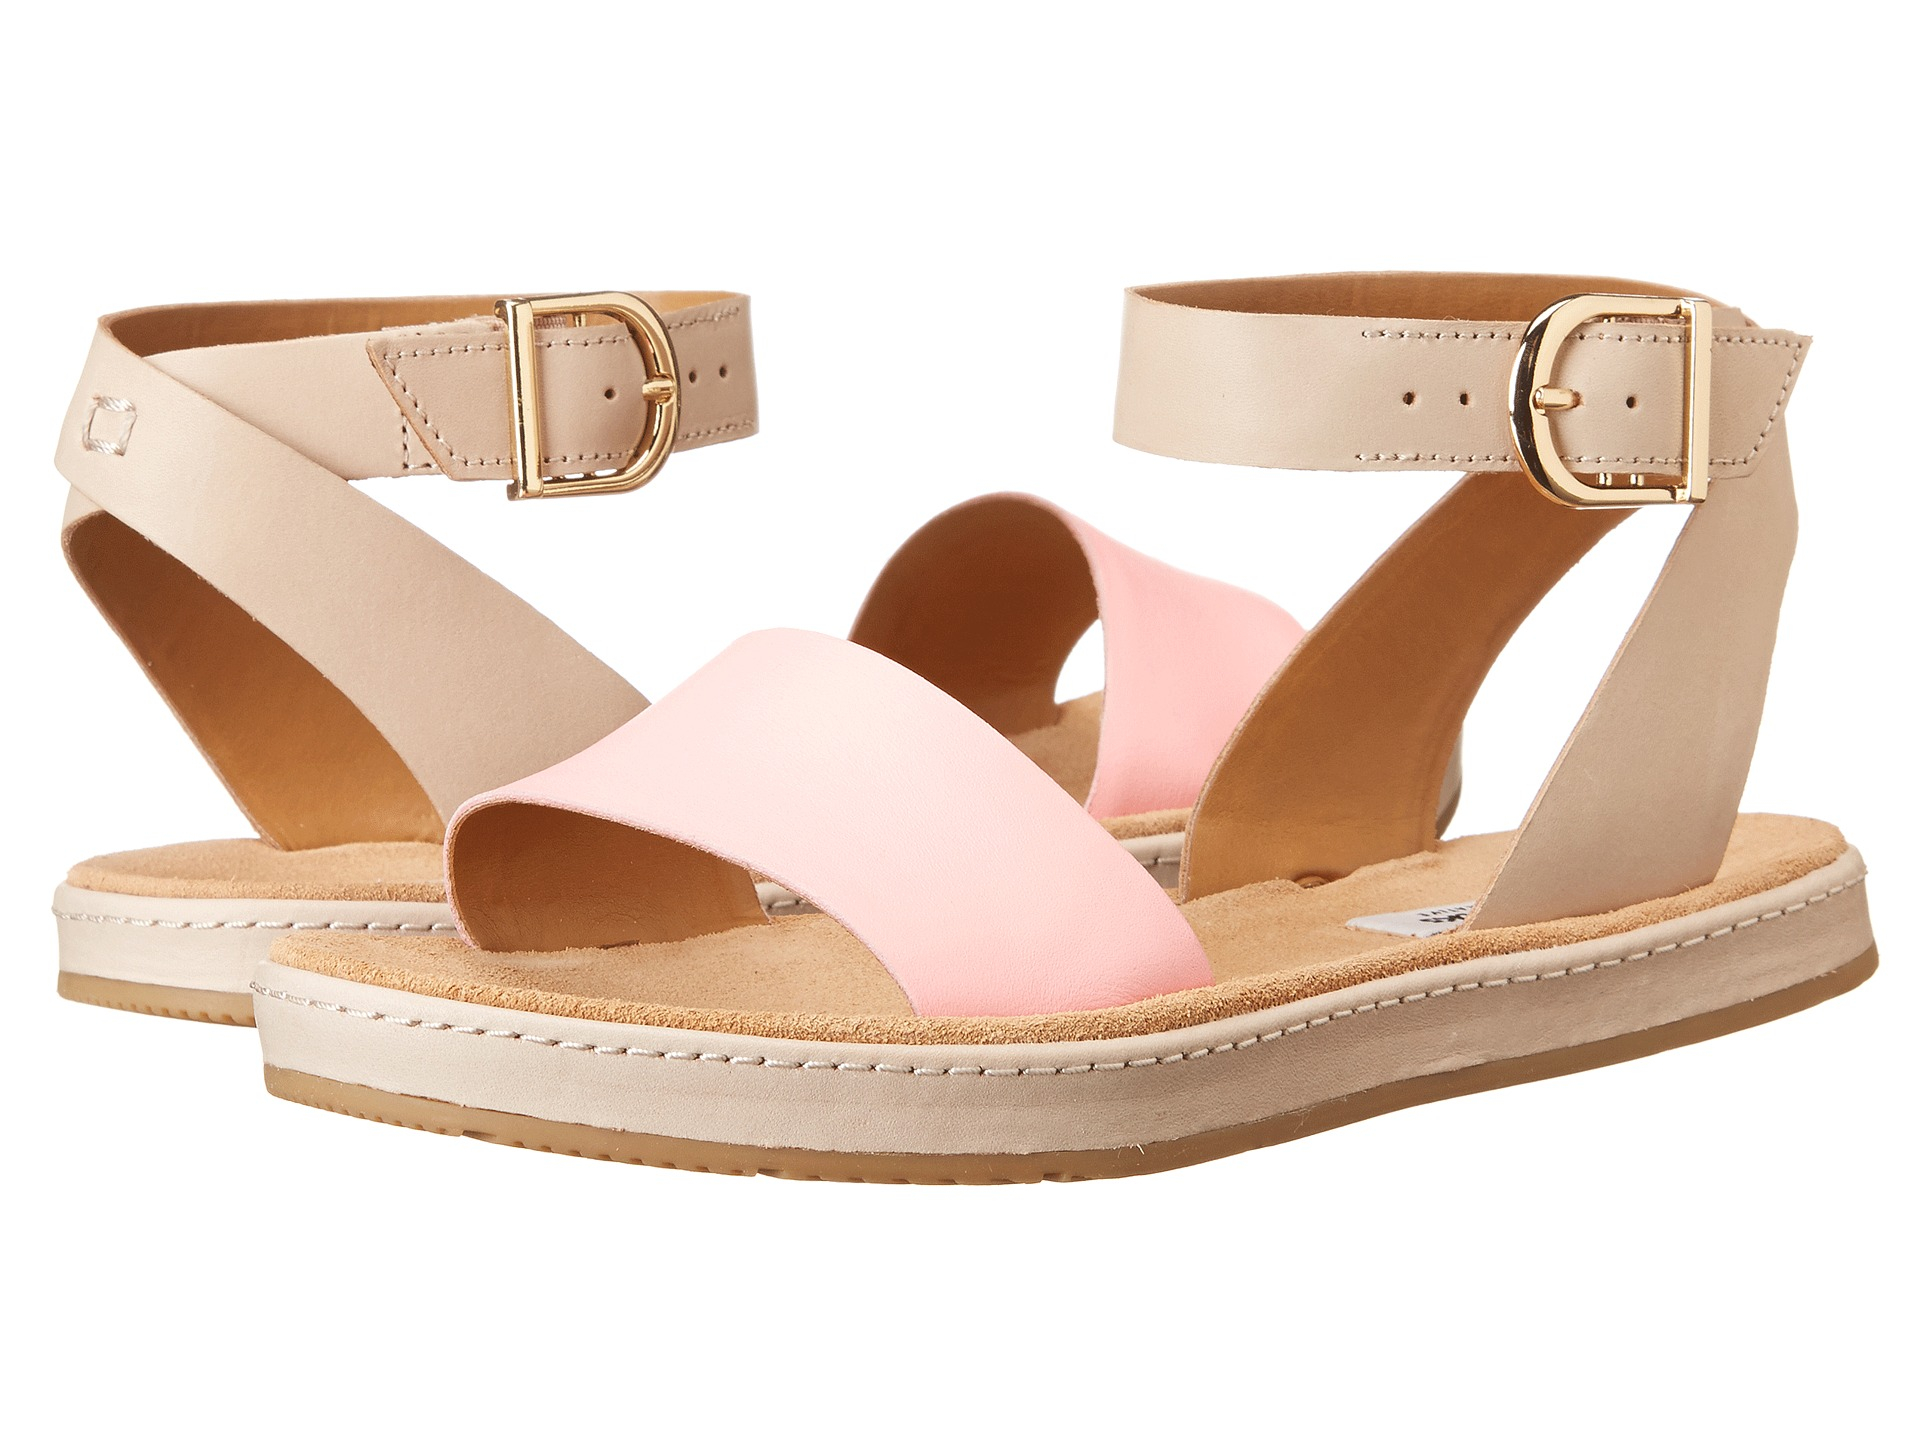 505b85452 Gallery. Previously sold at  Zappos · Women s Clarks Janey Mae Women s  Jeweled Flat Sandals ...